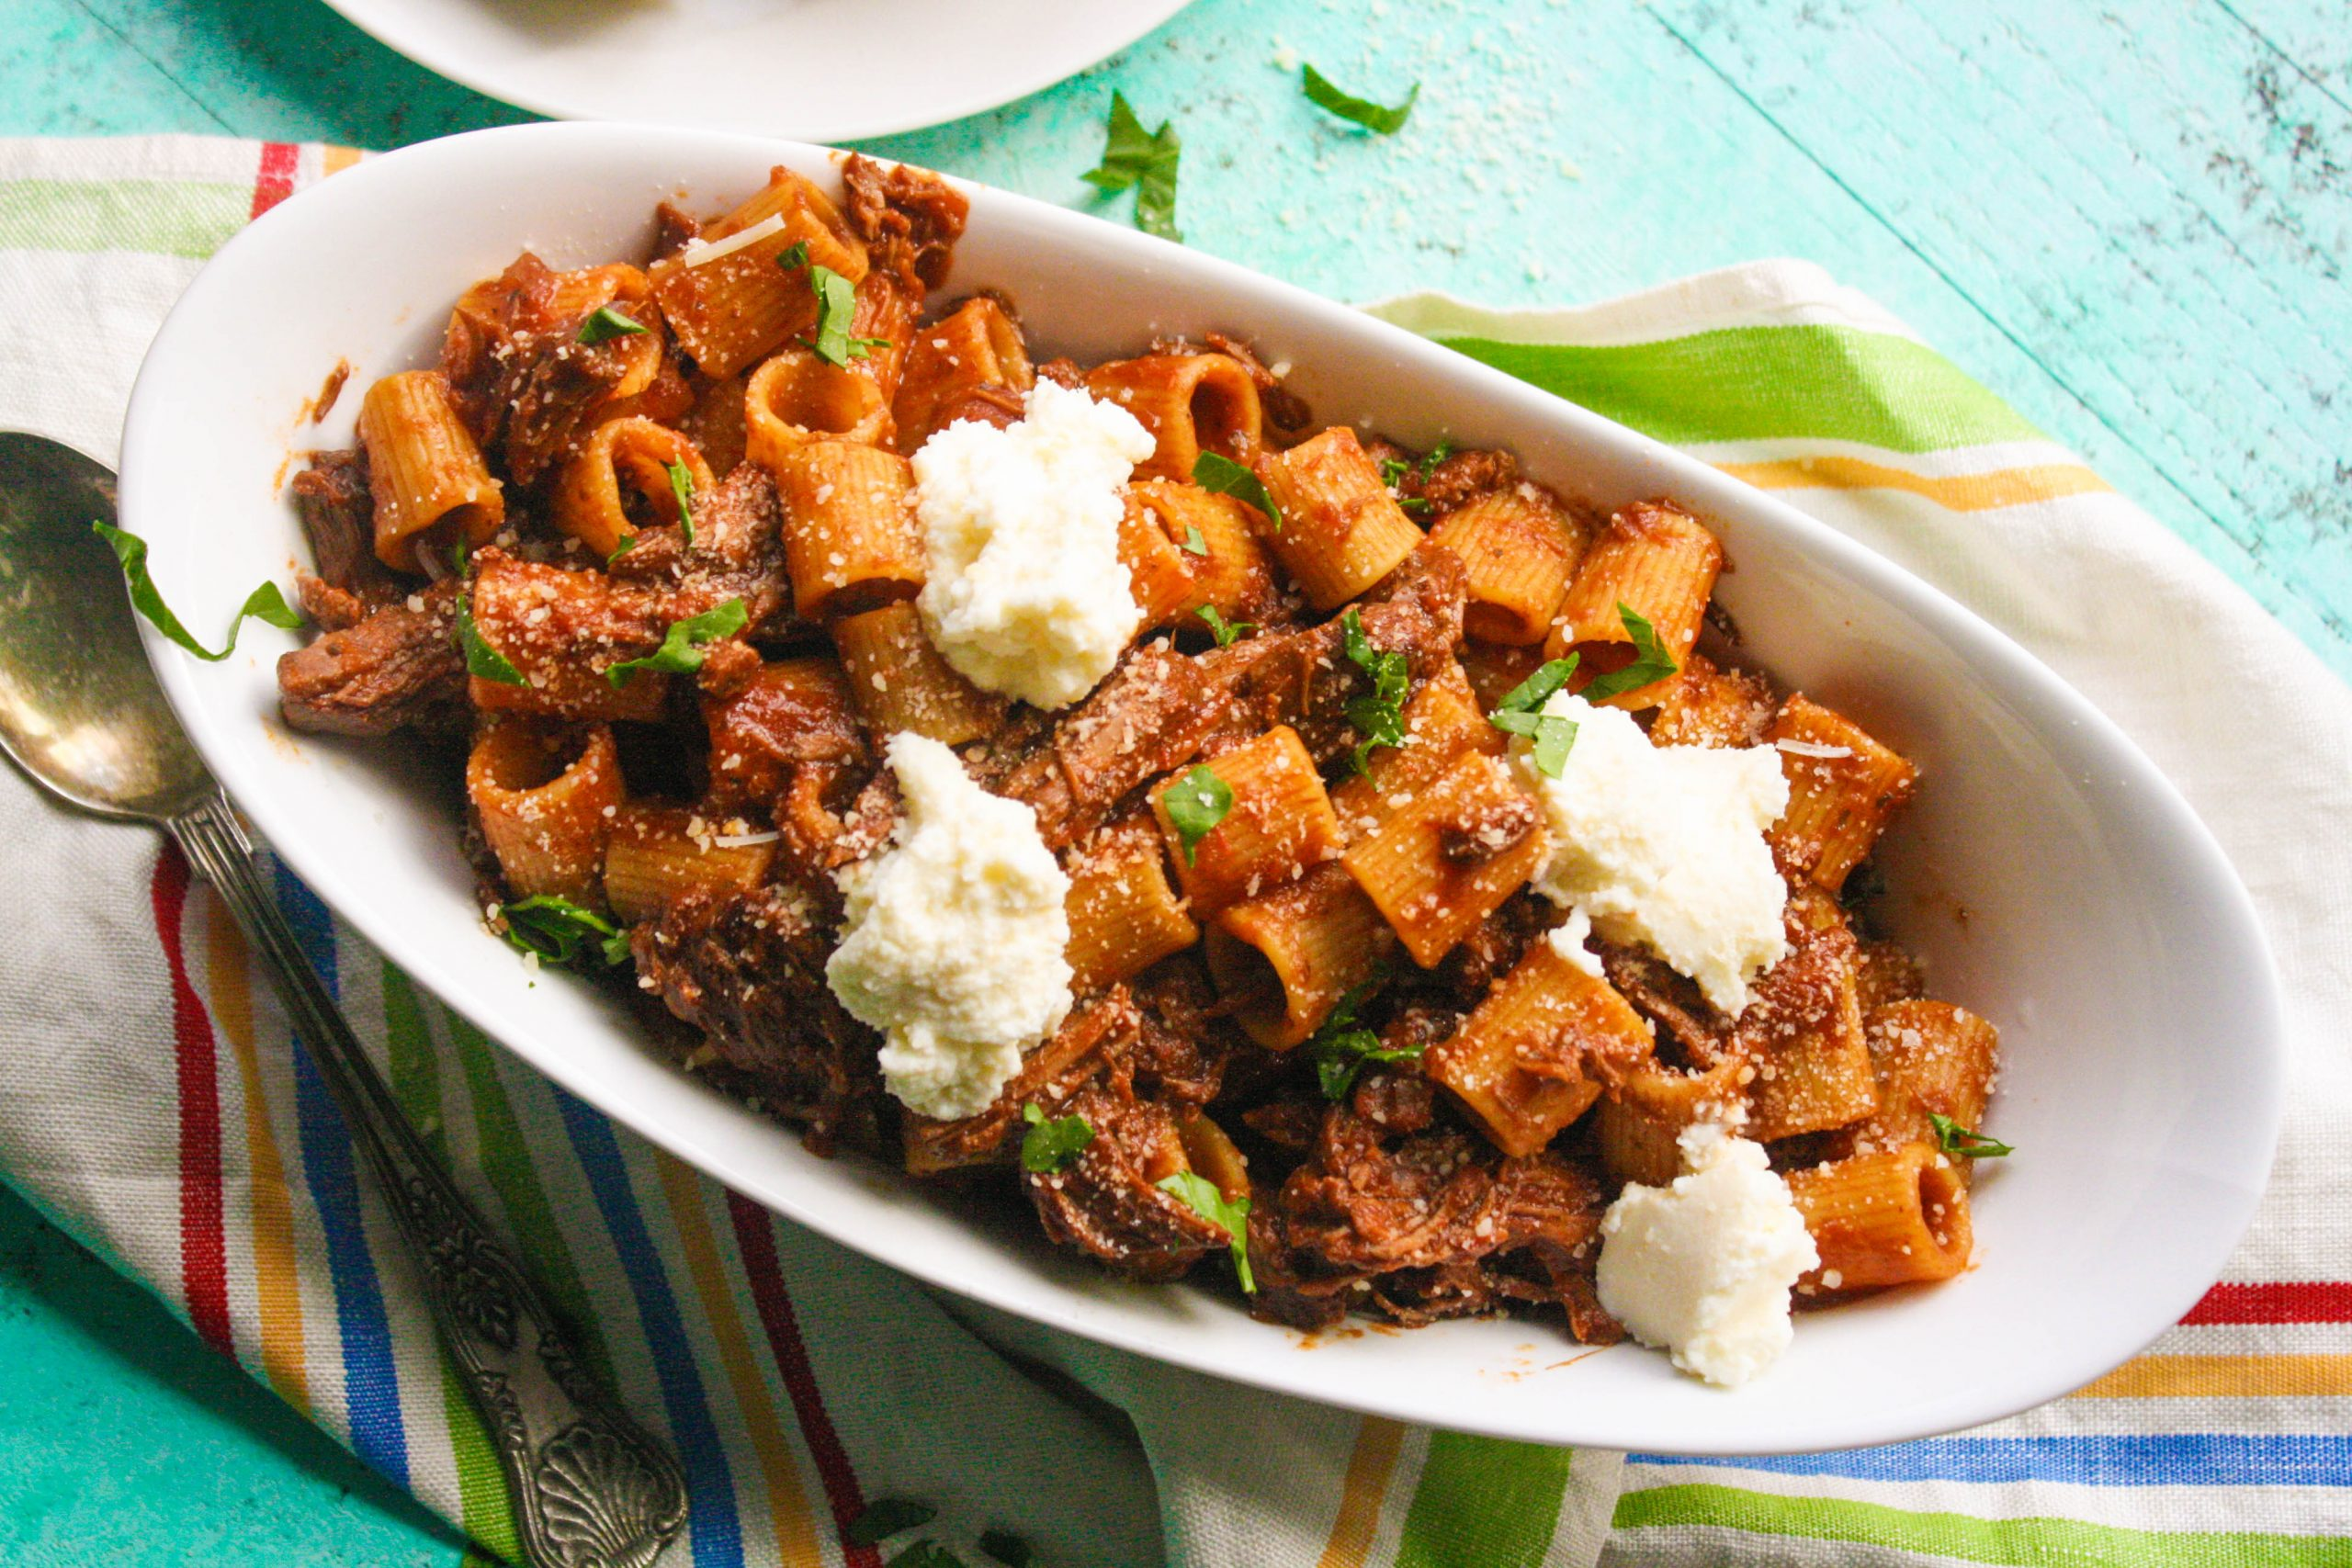 Pasta with short ribs and ricotta is a lovely dish with creamy ricotta as a bonus!